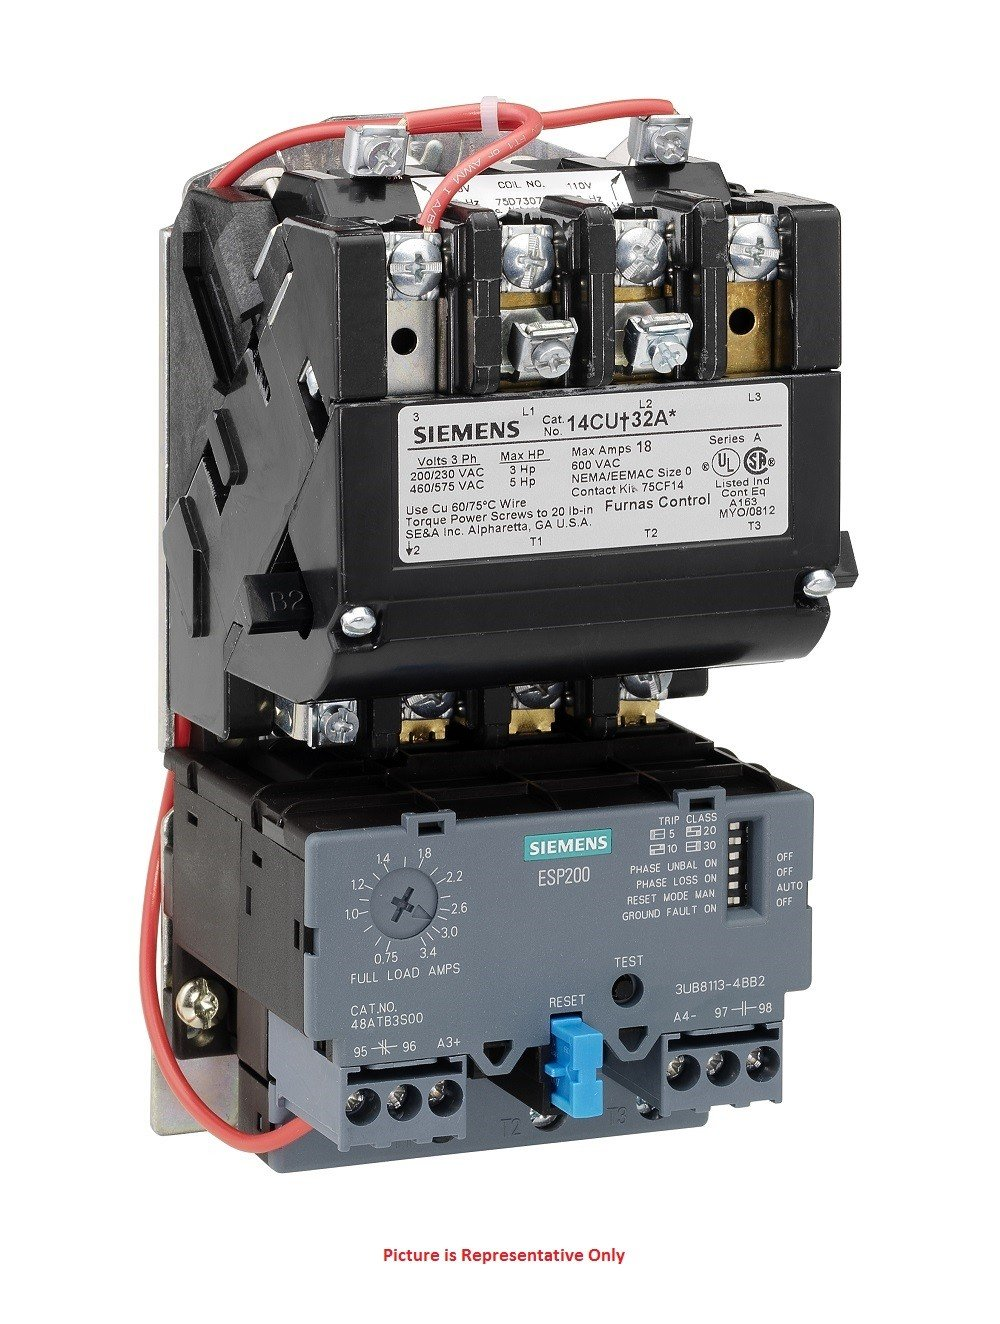 Square D 8536sb02s Wiring Diagram besides Square D Wiring Diagram Book as well 3 Phase Converter Wiring Diagram furthermore Neutral 3 Phase Breaker Panel Wiring Diagram in addition 200w Square D Transformer Wiring Diagrams. on square d 8536 wiring diagram